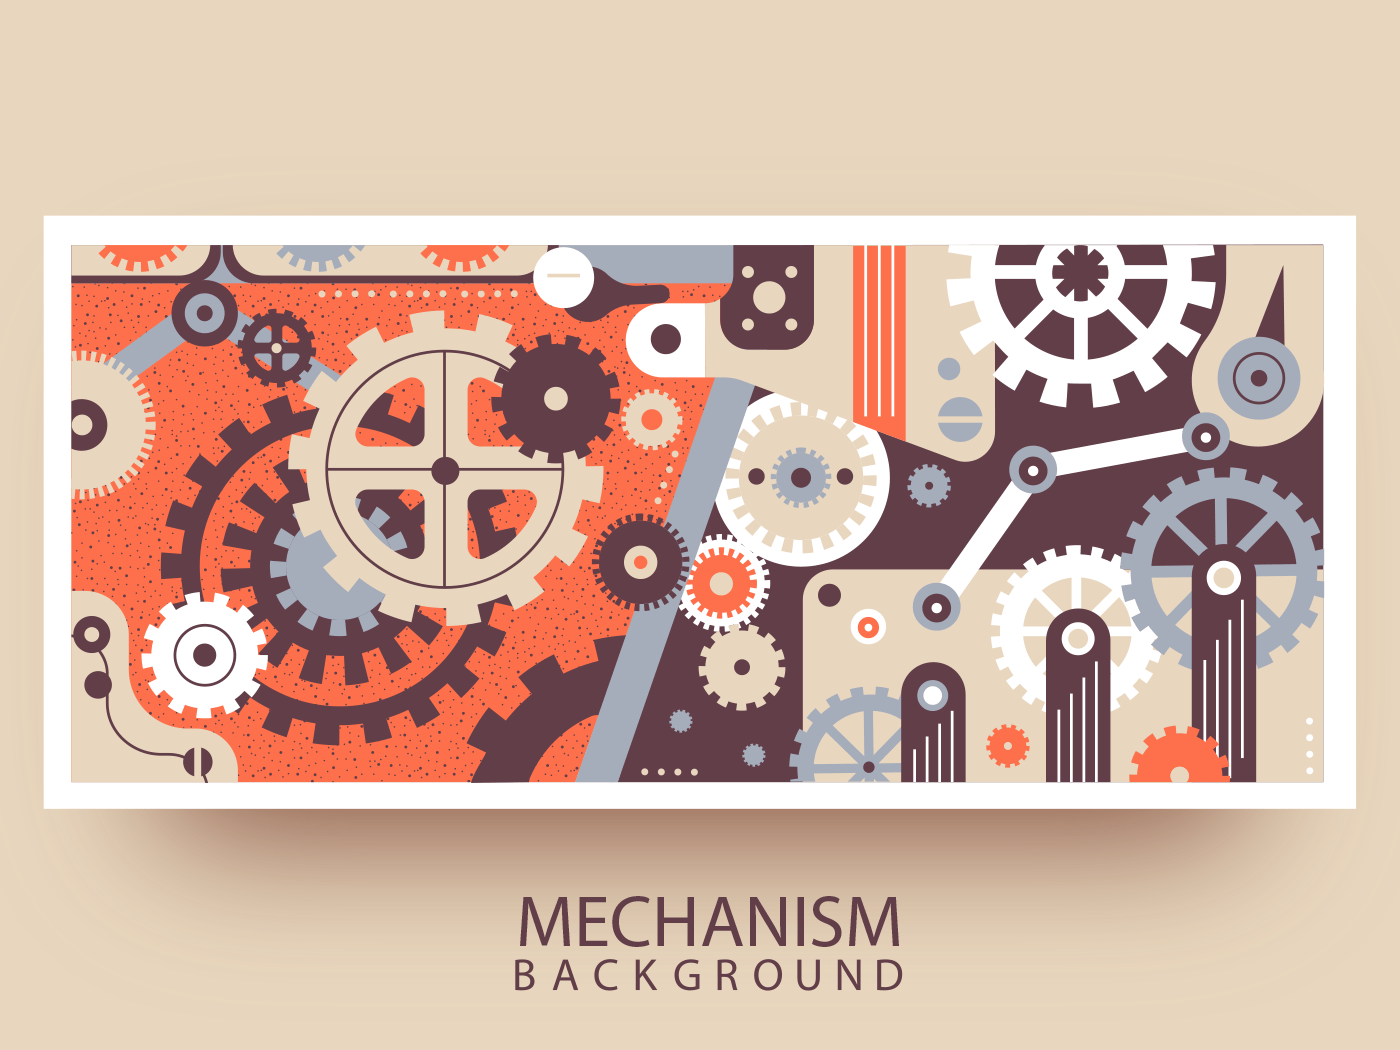 Mechanism abstract background